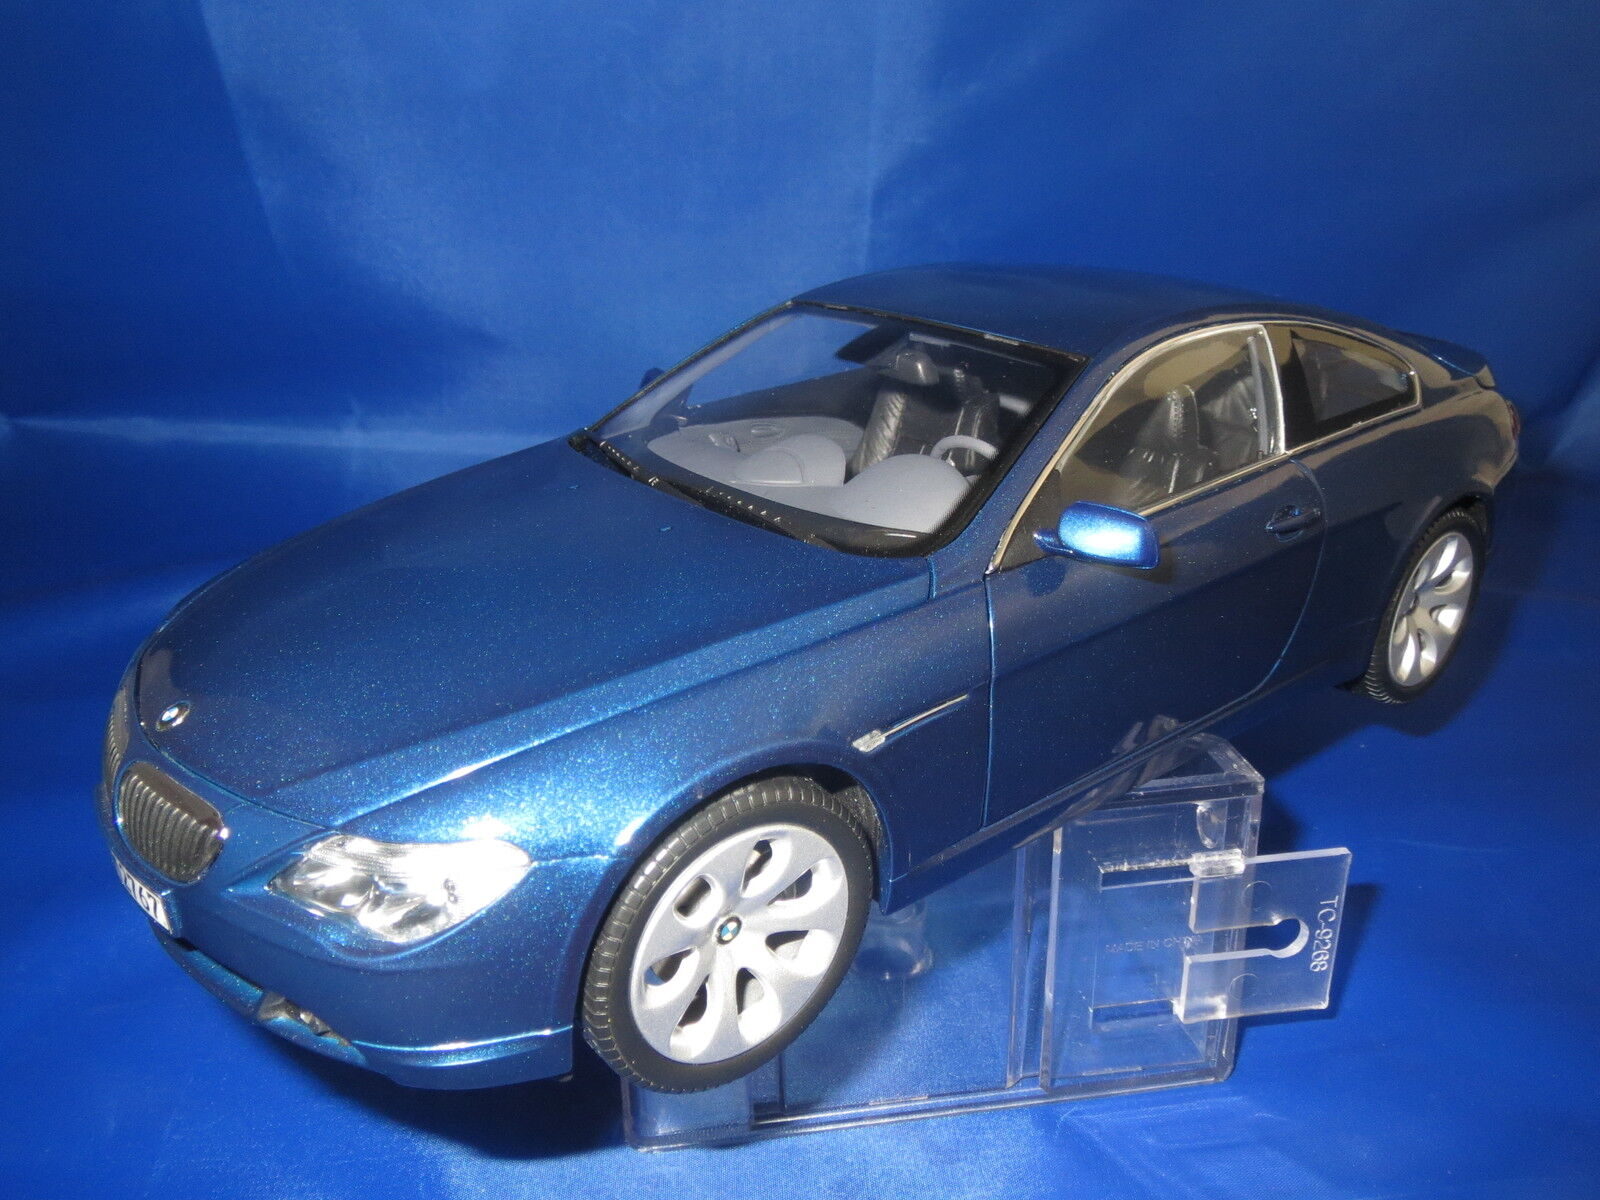 KYOSHO BMW 6er Coupè Dealer version 80430153284  Blu-Metallico  1:18 OVP